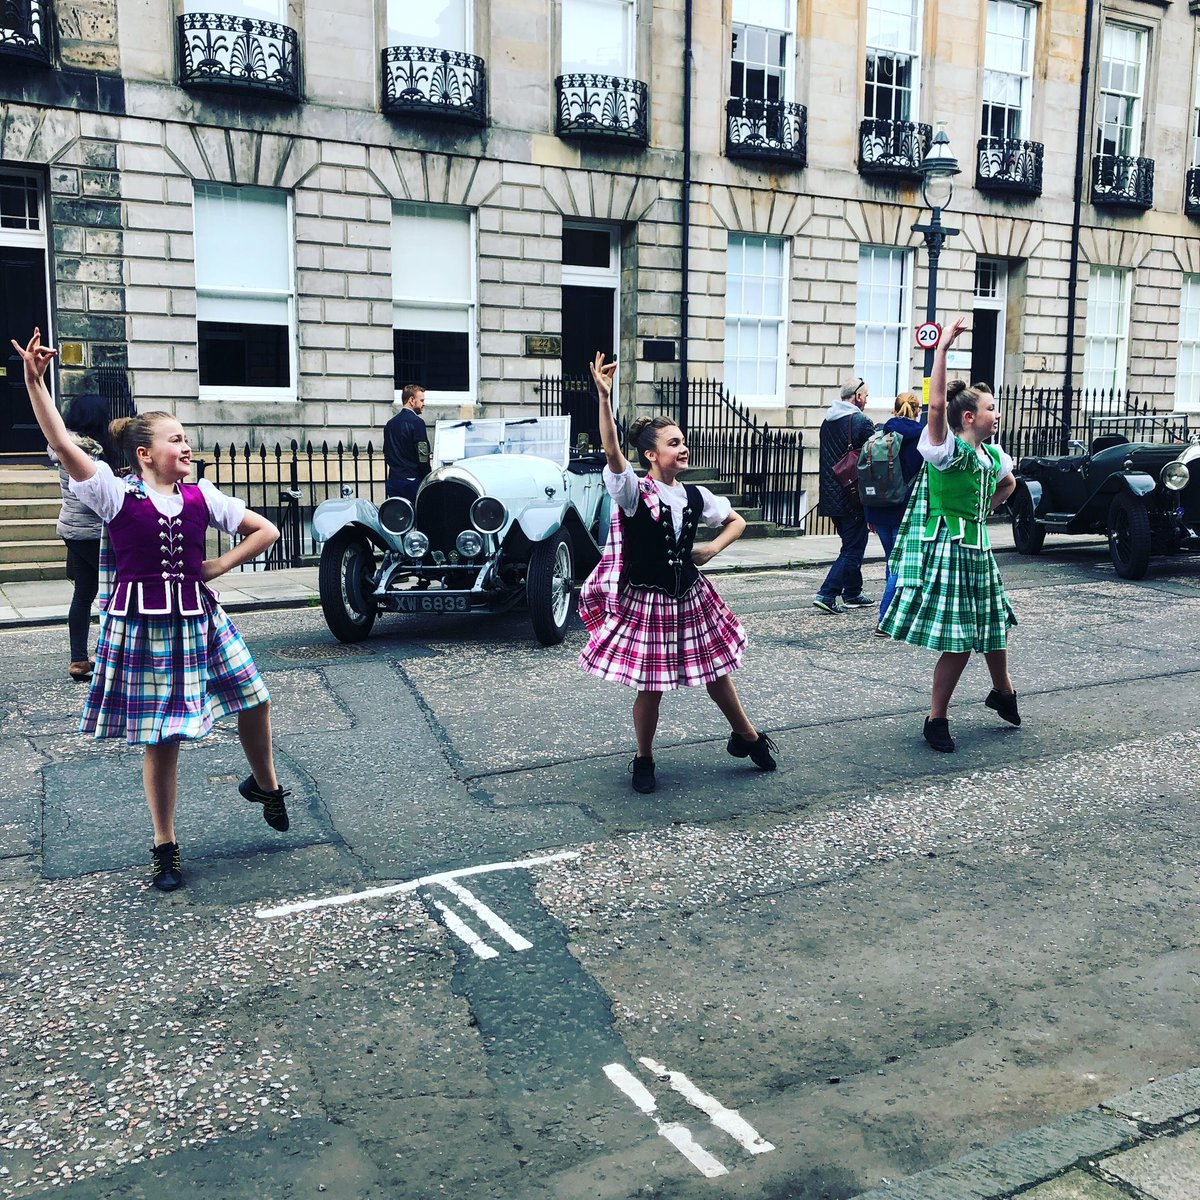 Live performance from Paterson School of Dancing 💃🏼🏴󠁧󠁢󠁳󠁣󠁴󠁿🎼 #ClassicVehicleEvent  . . . #classicvehicles #takeacloserlook #edinburghswestend #edinburghstory #thisiedinburgh